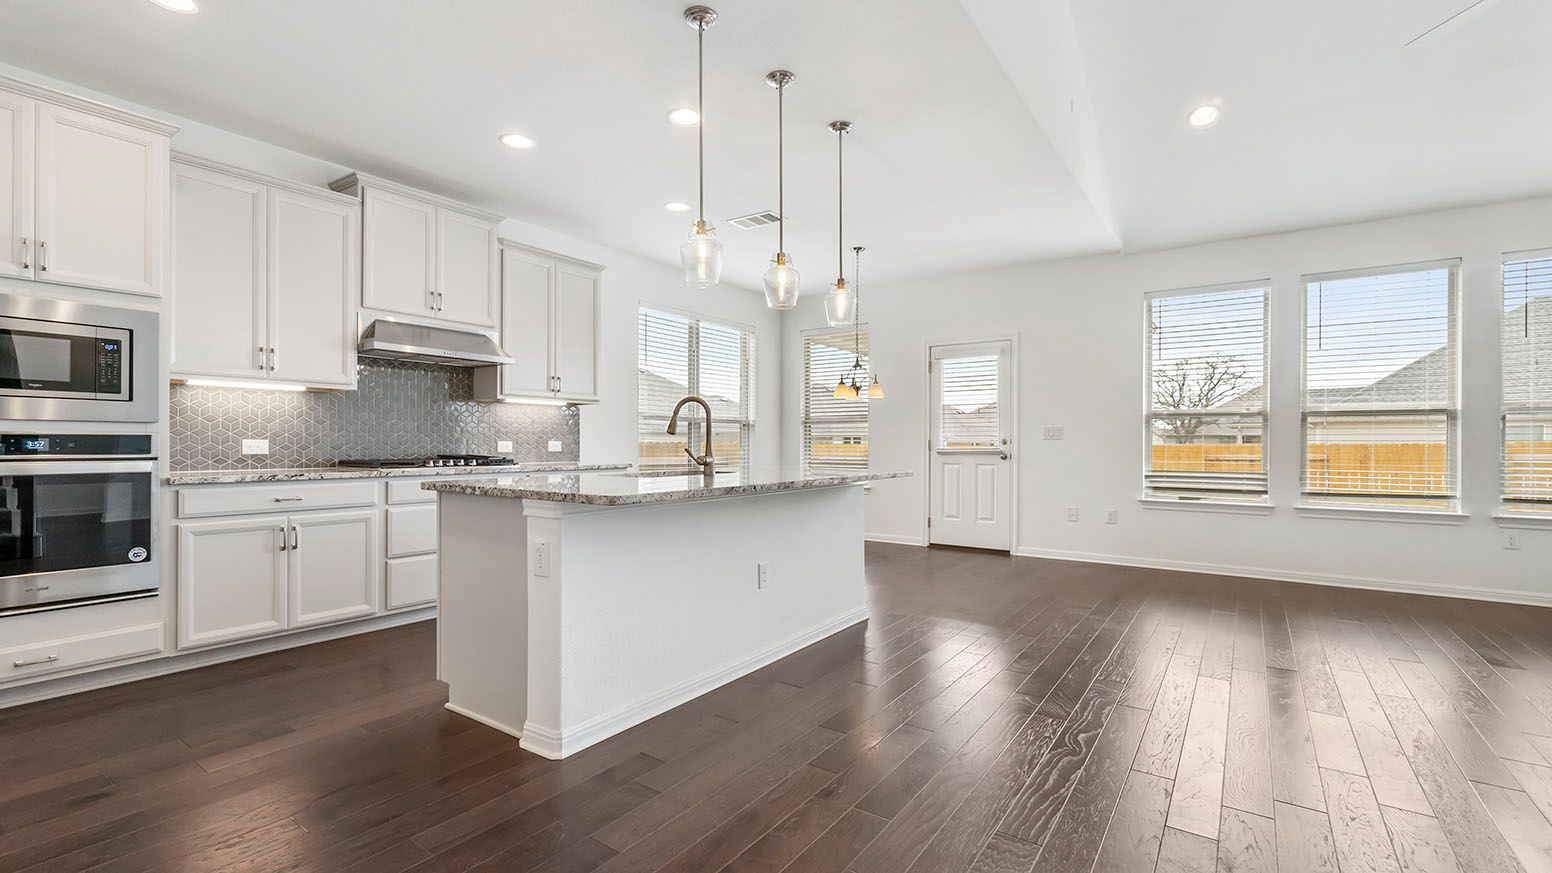 Kitchen featured in the Thornton By Ashton Woods in Austin, TX